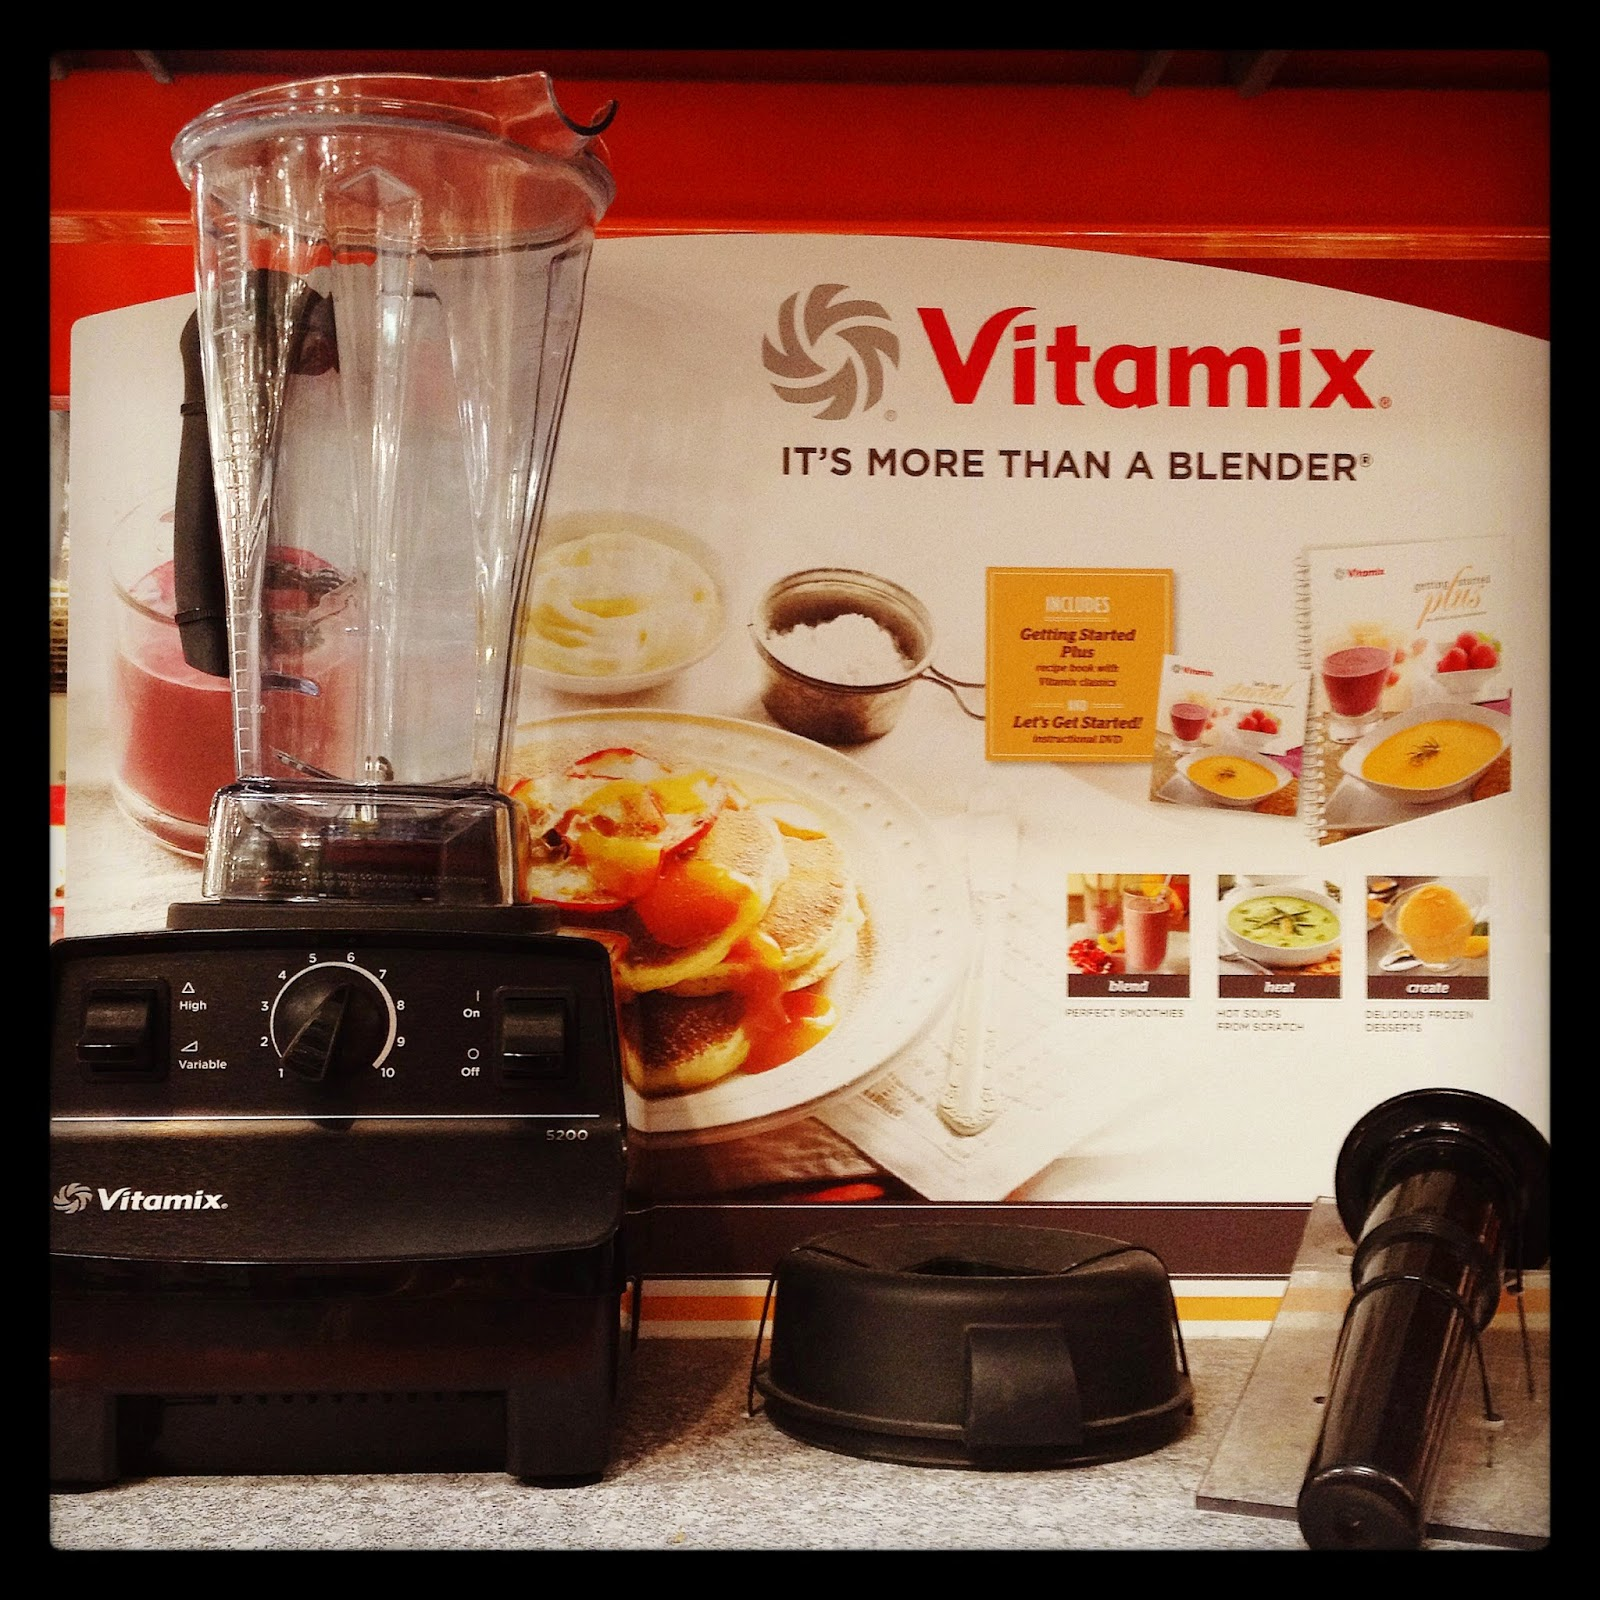 Vitamix Blender Vegetarian Vegan Costco